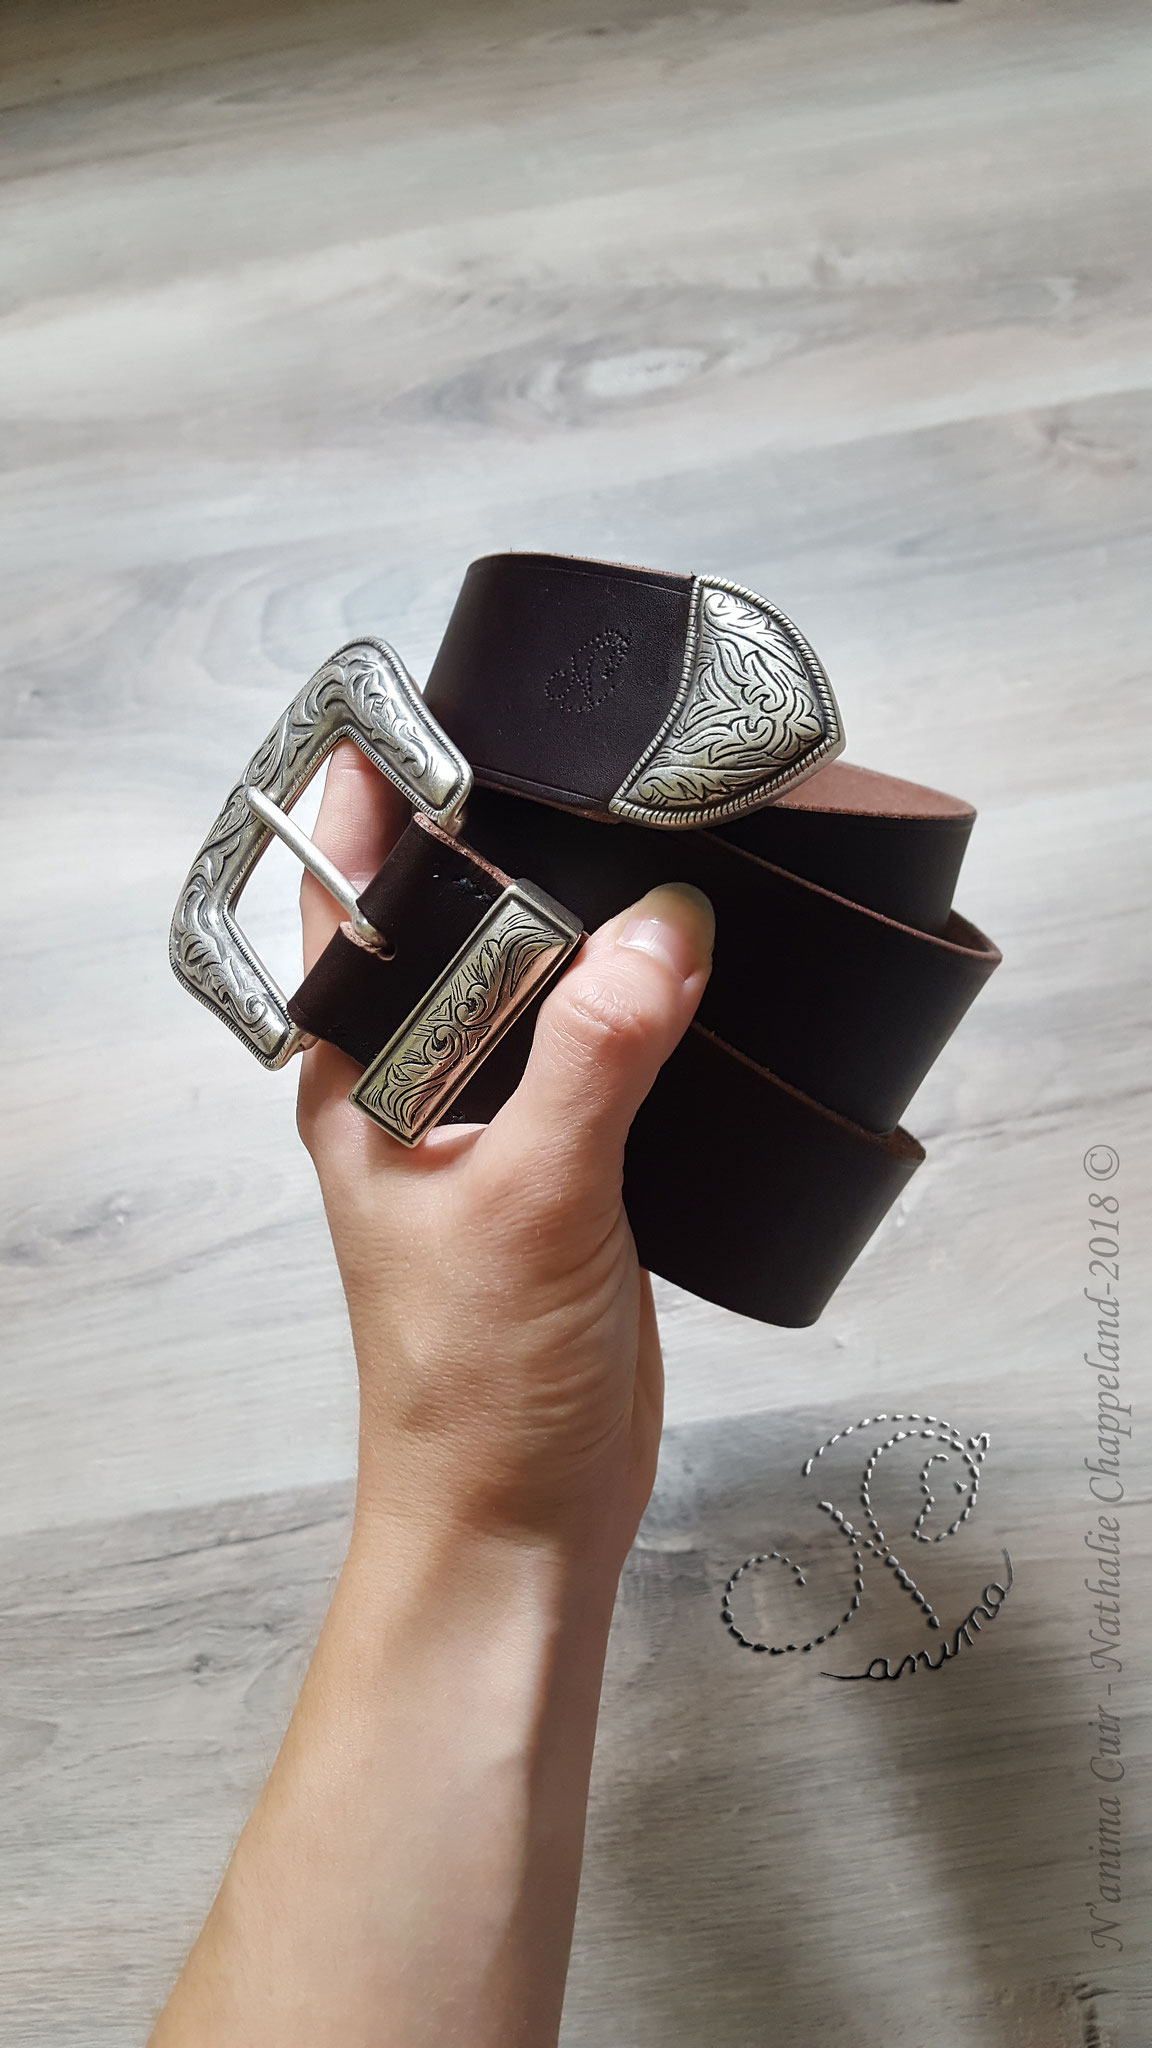 Ceinture Western homme (40mm), couture main au point sellier, 2018 ©.